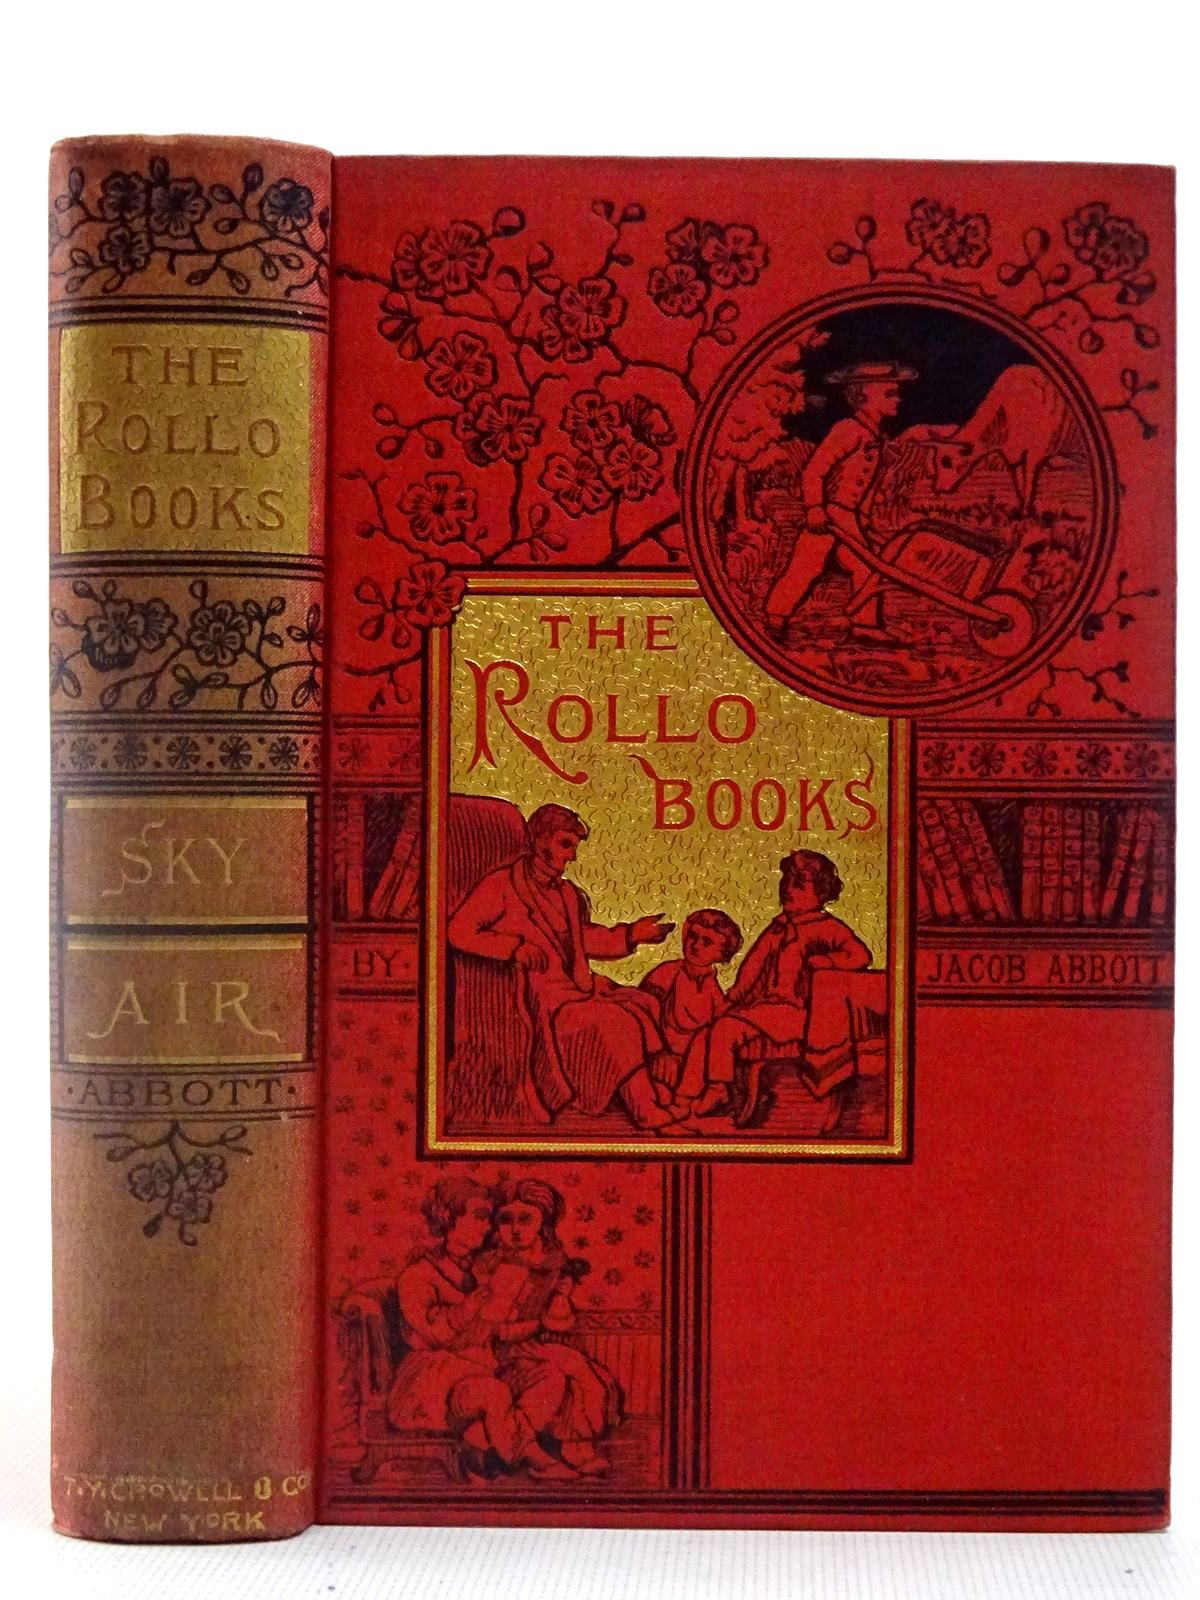 Photo of THE ROLLO BOOKS ROLLO'S PHILOSOPHY SKY & AIR written by Abbott, Jacob published by T.Y. Crowell & Co. (STOCK CODE: 2126917)  for sale by Stella & Rose's Books